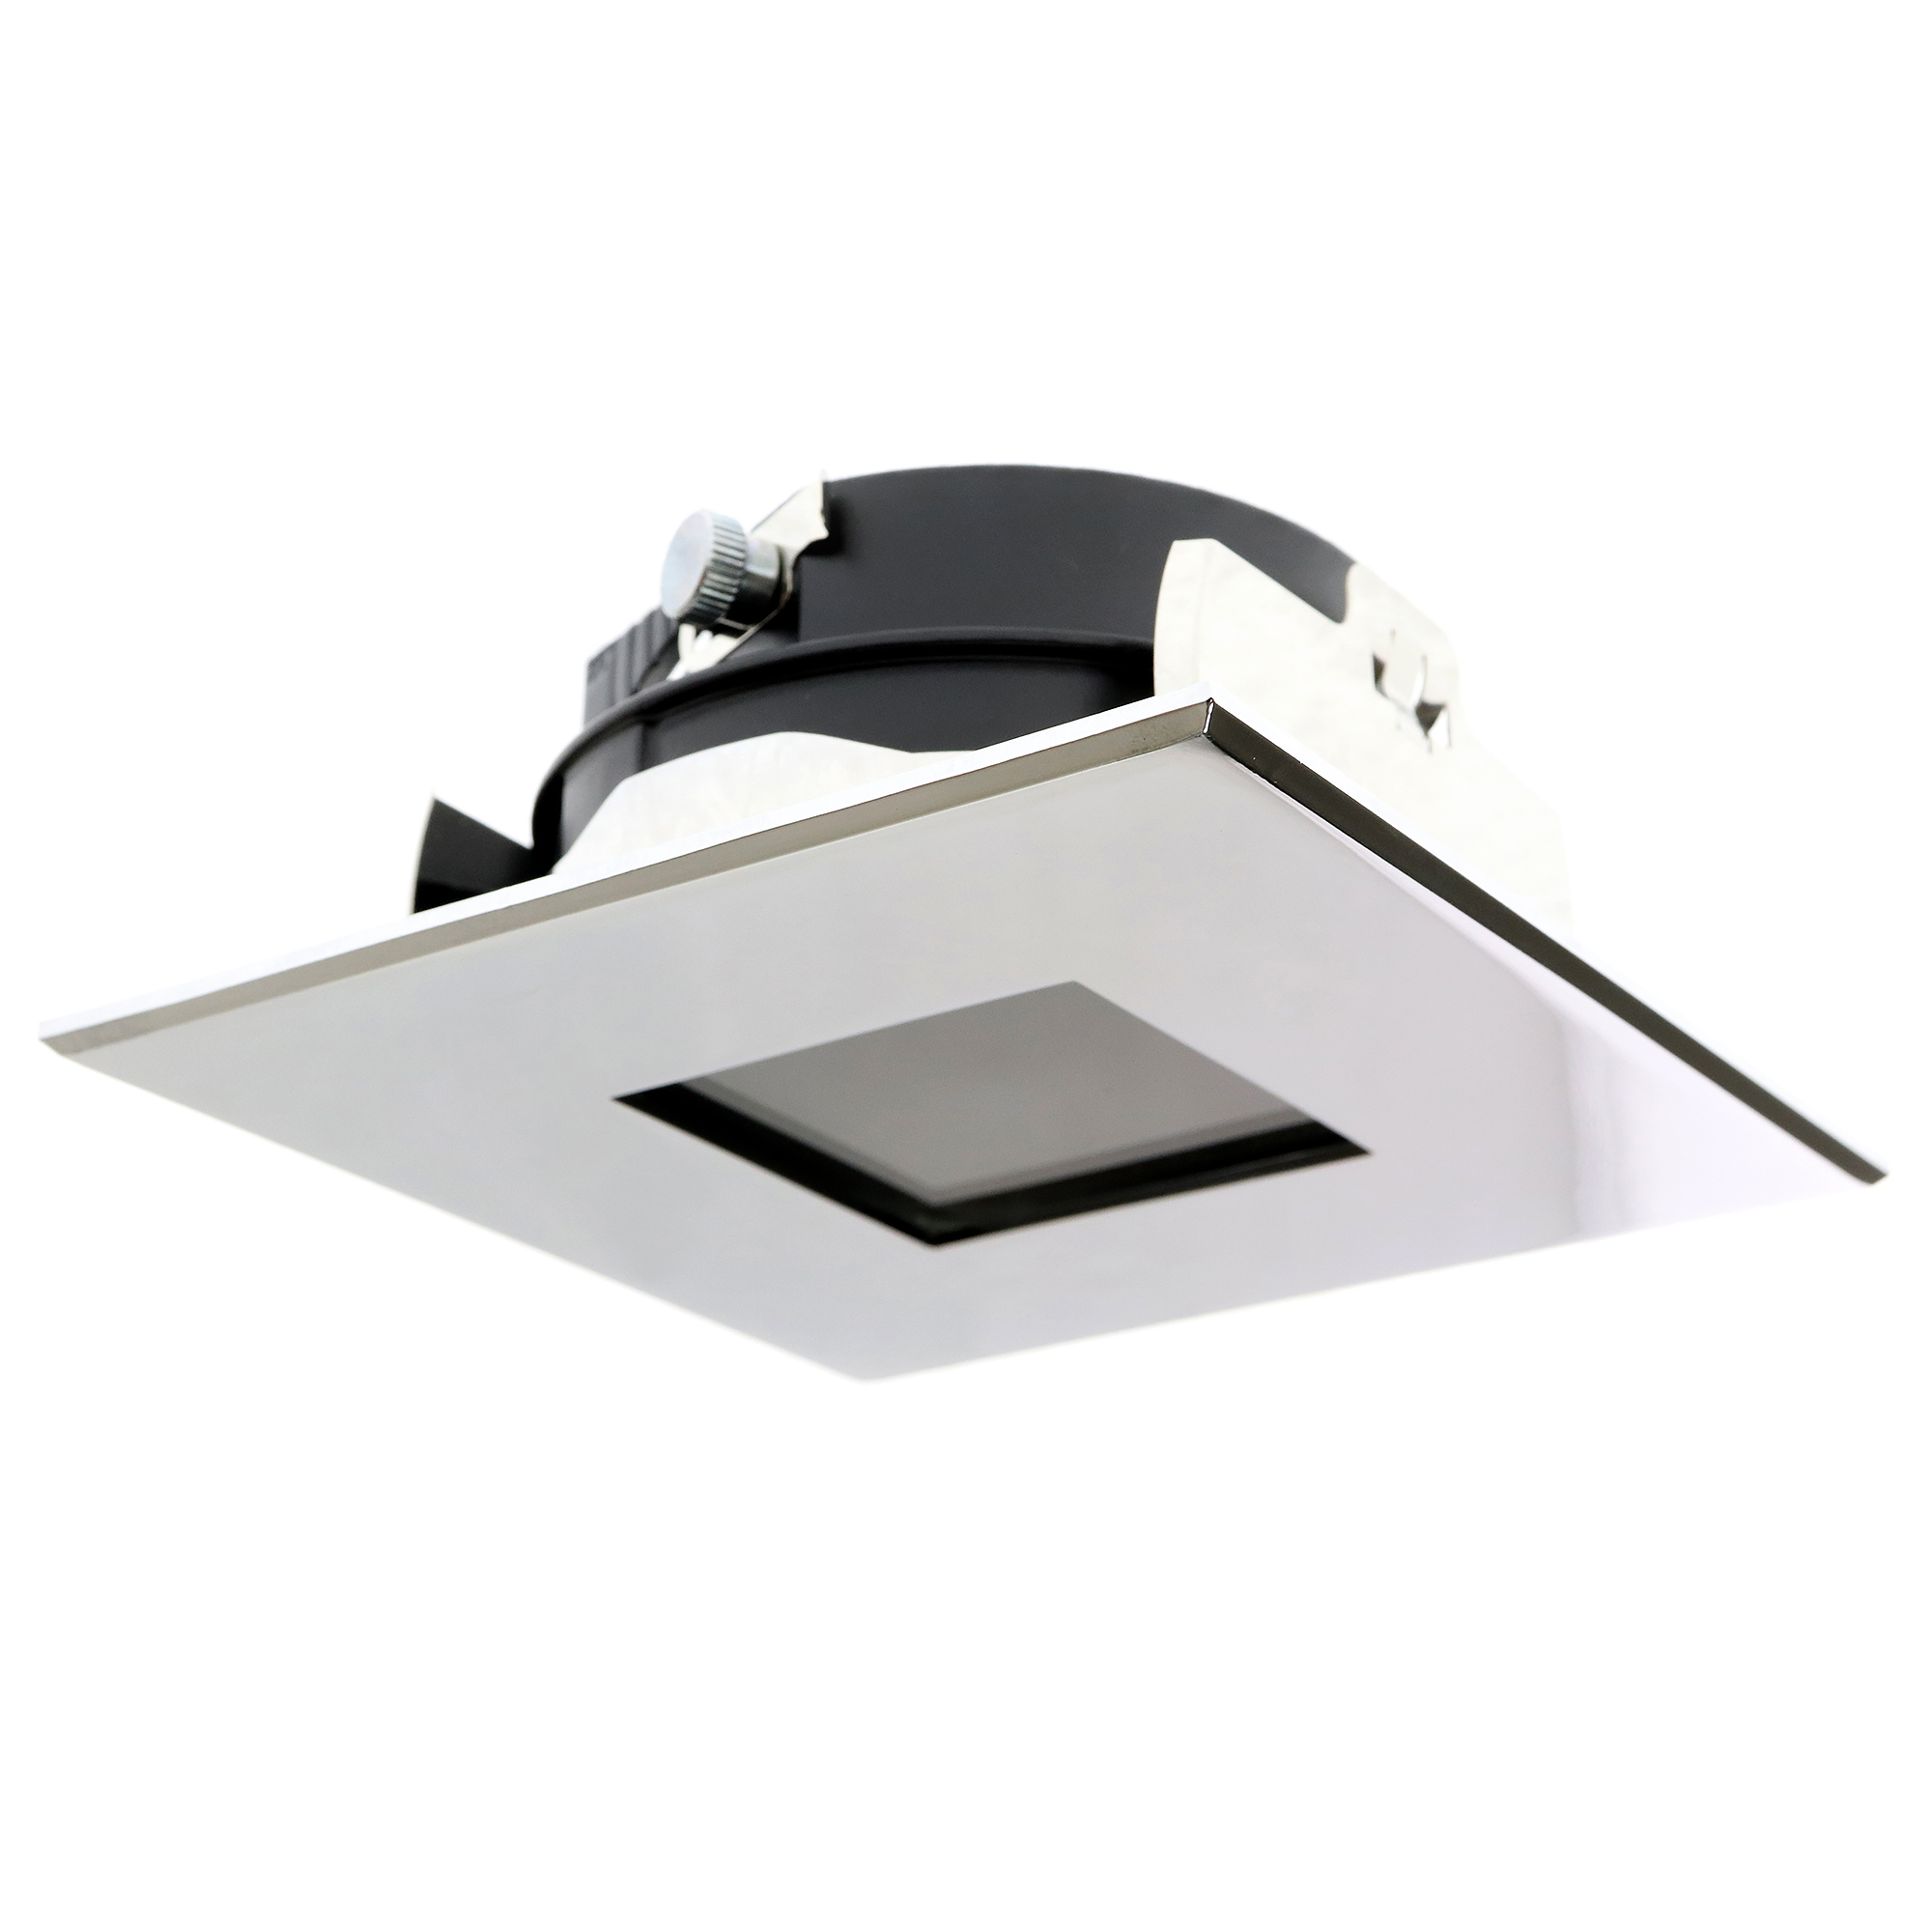 square recessed lighting fixtures  home design ideas and pictures - great lightolier cmx  lytepoints square chrome recessed lighting